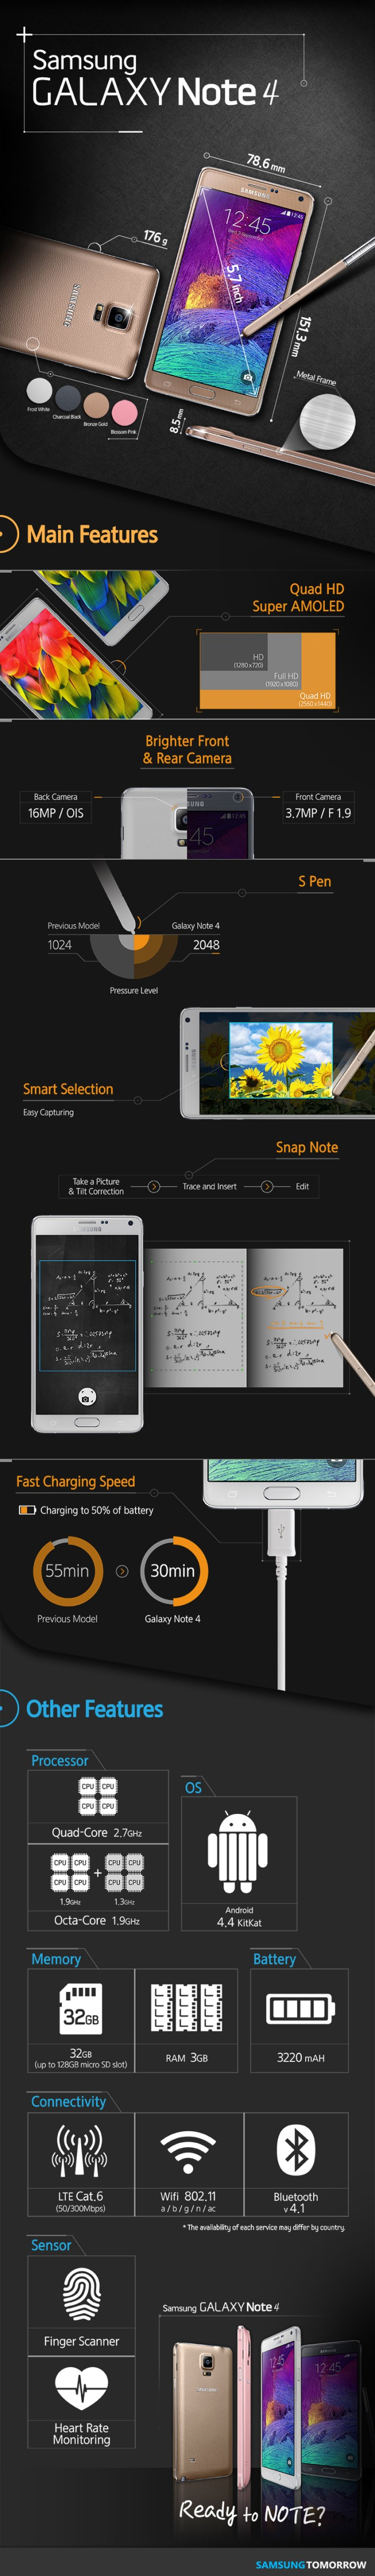 Galaxy Note 4 infographic